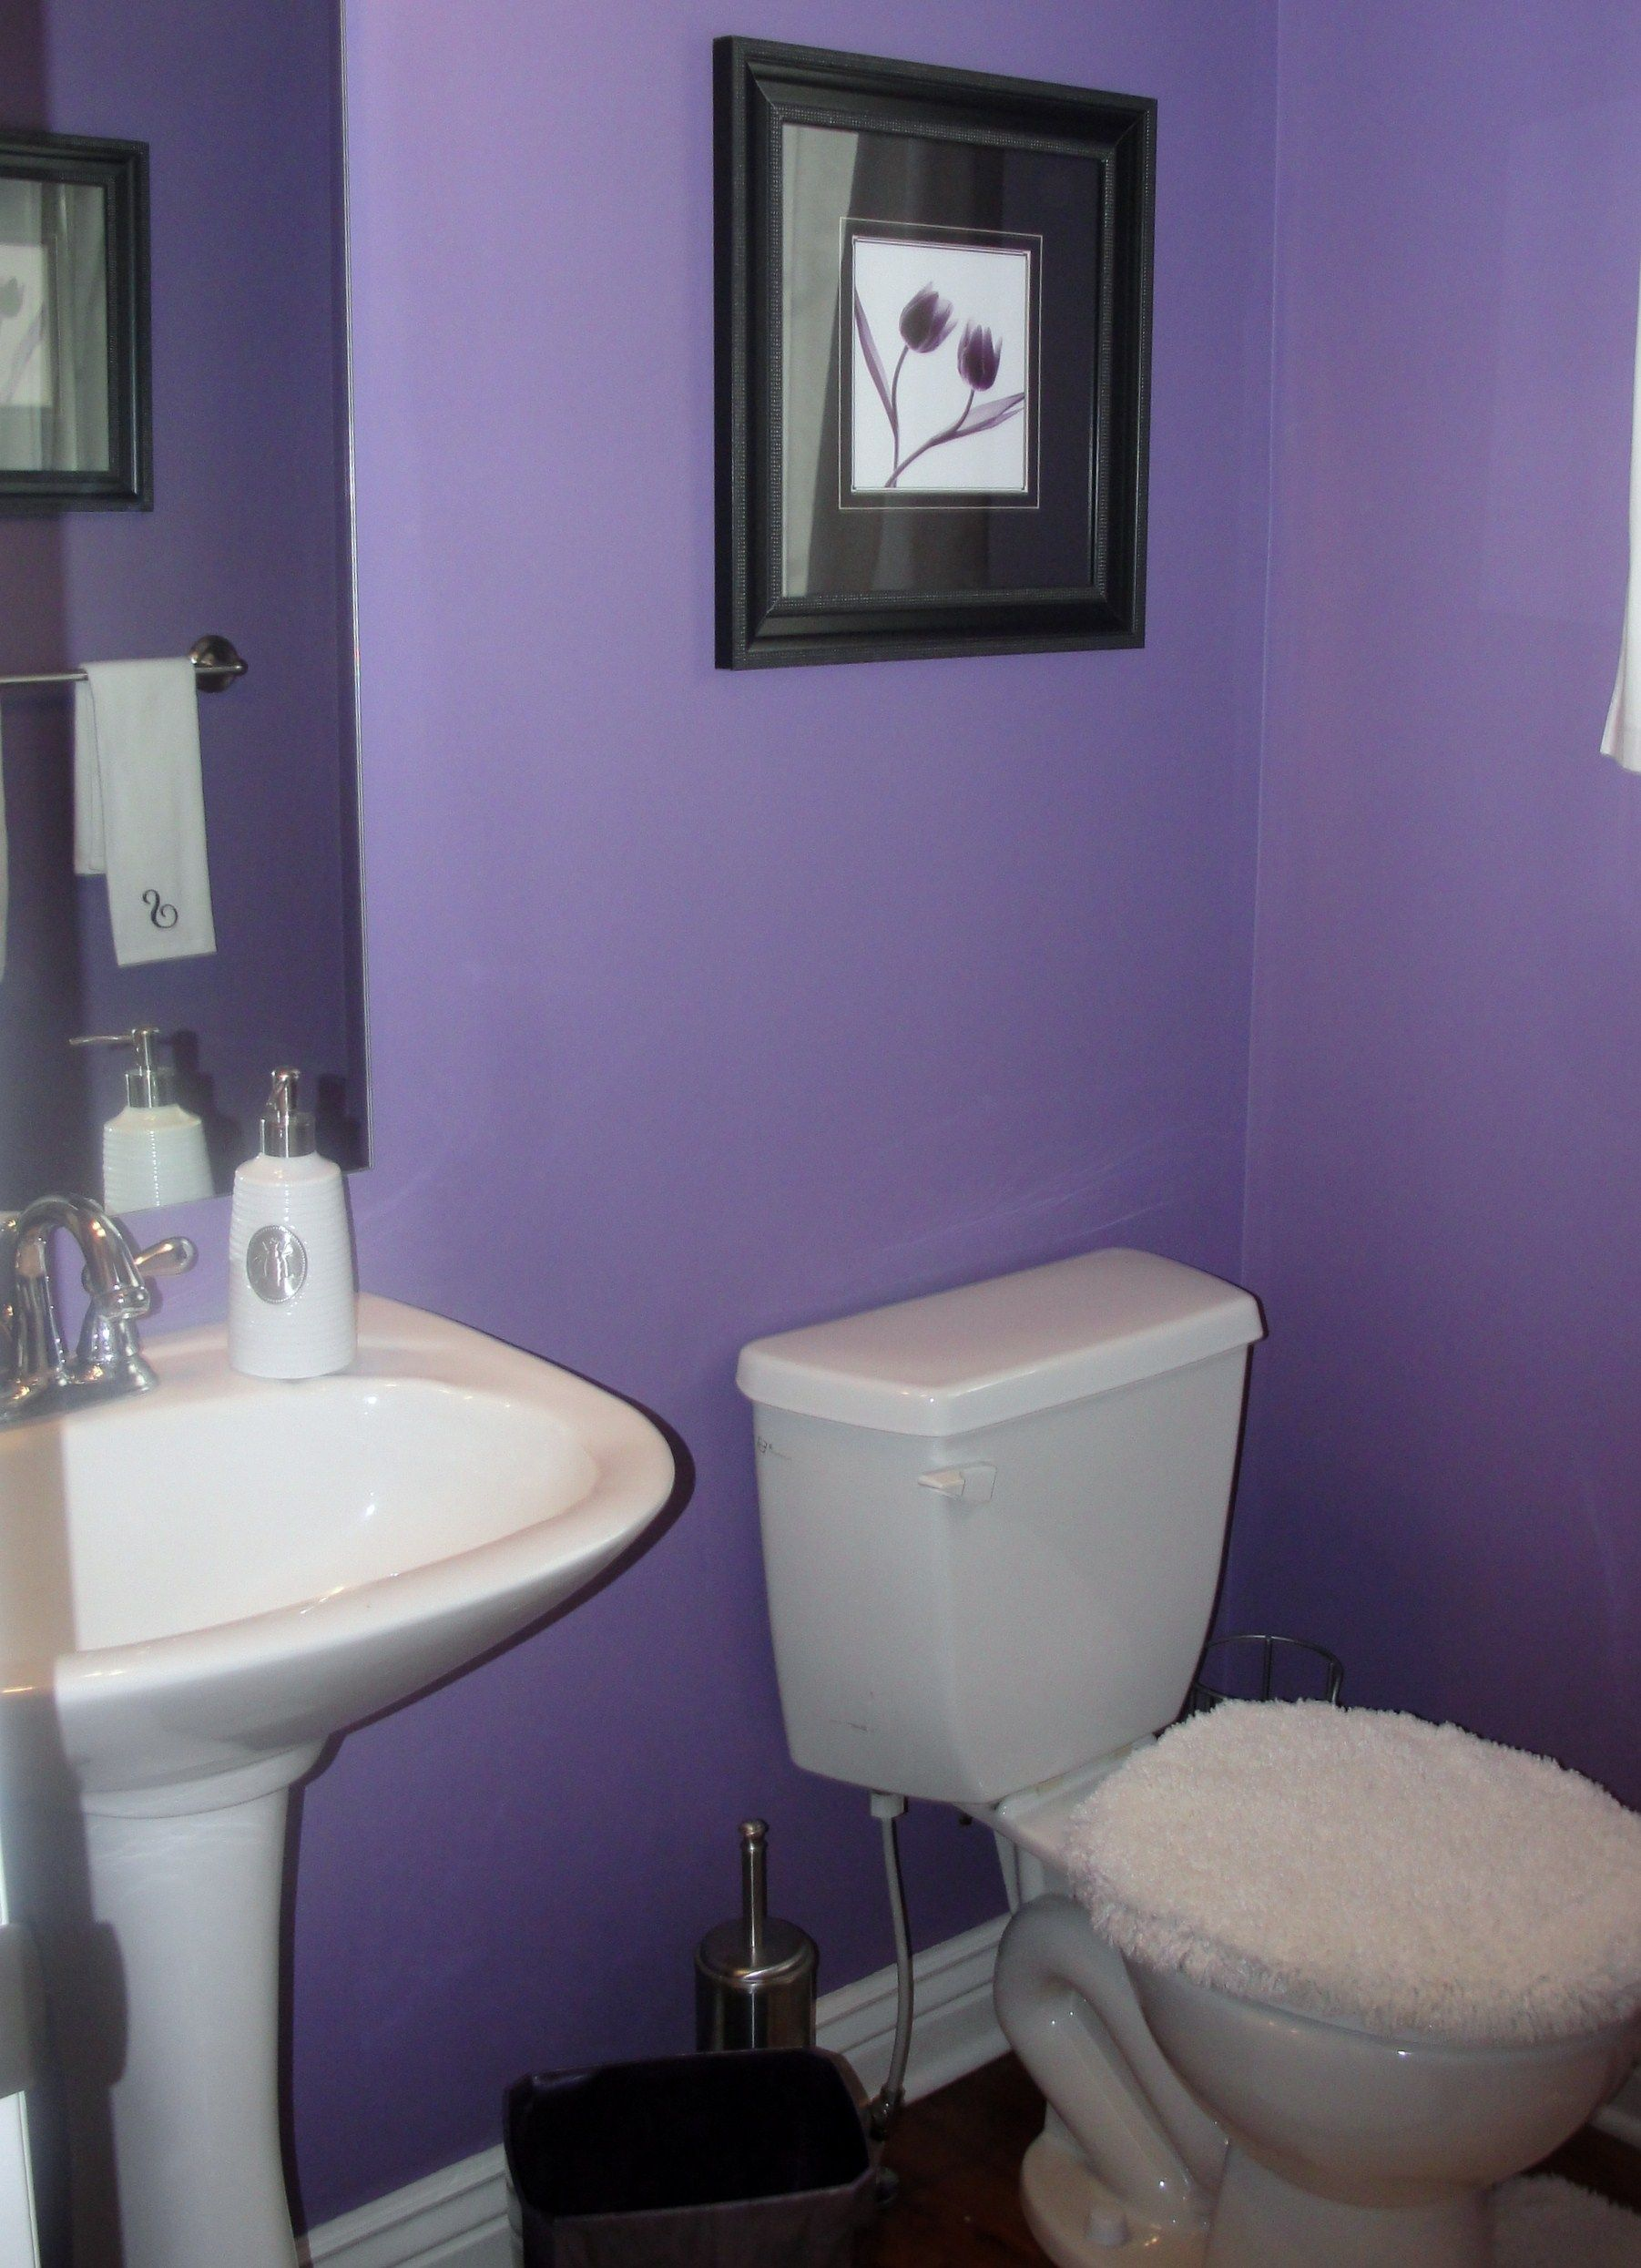 Powder Room Paint Color Valspar 274A 5 Majestic Purple Interior Flat